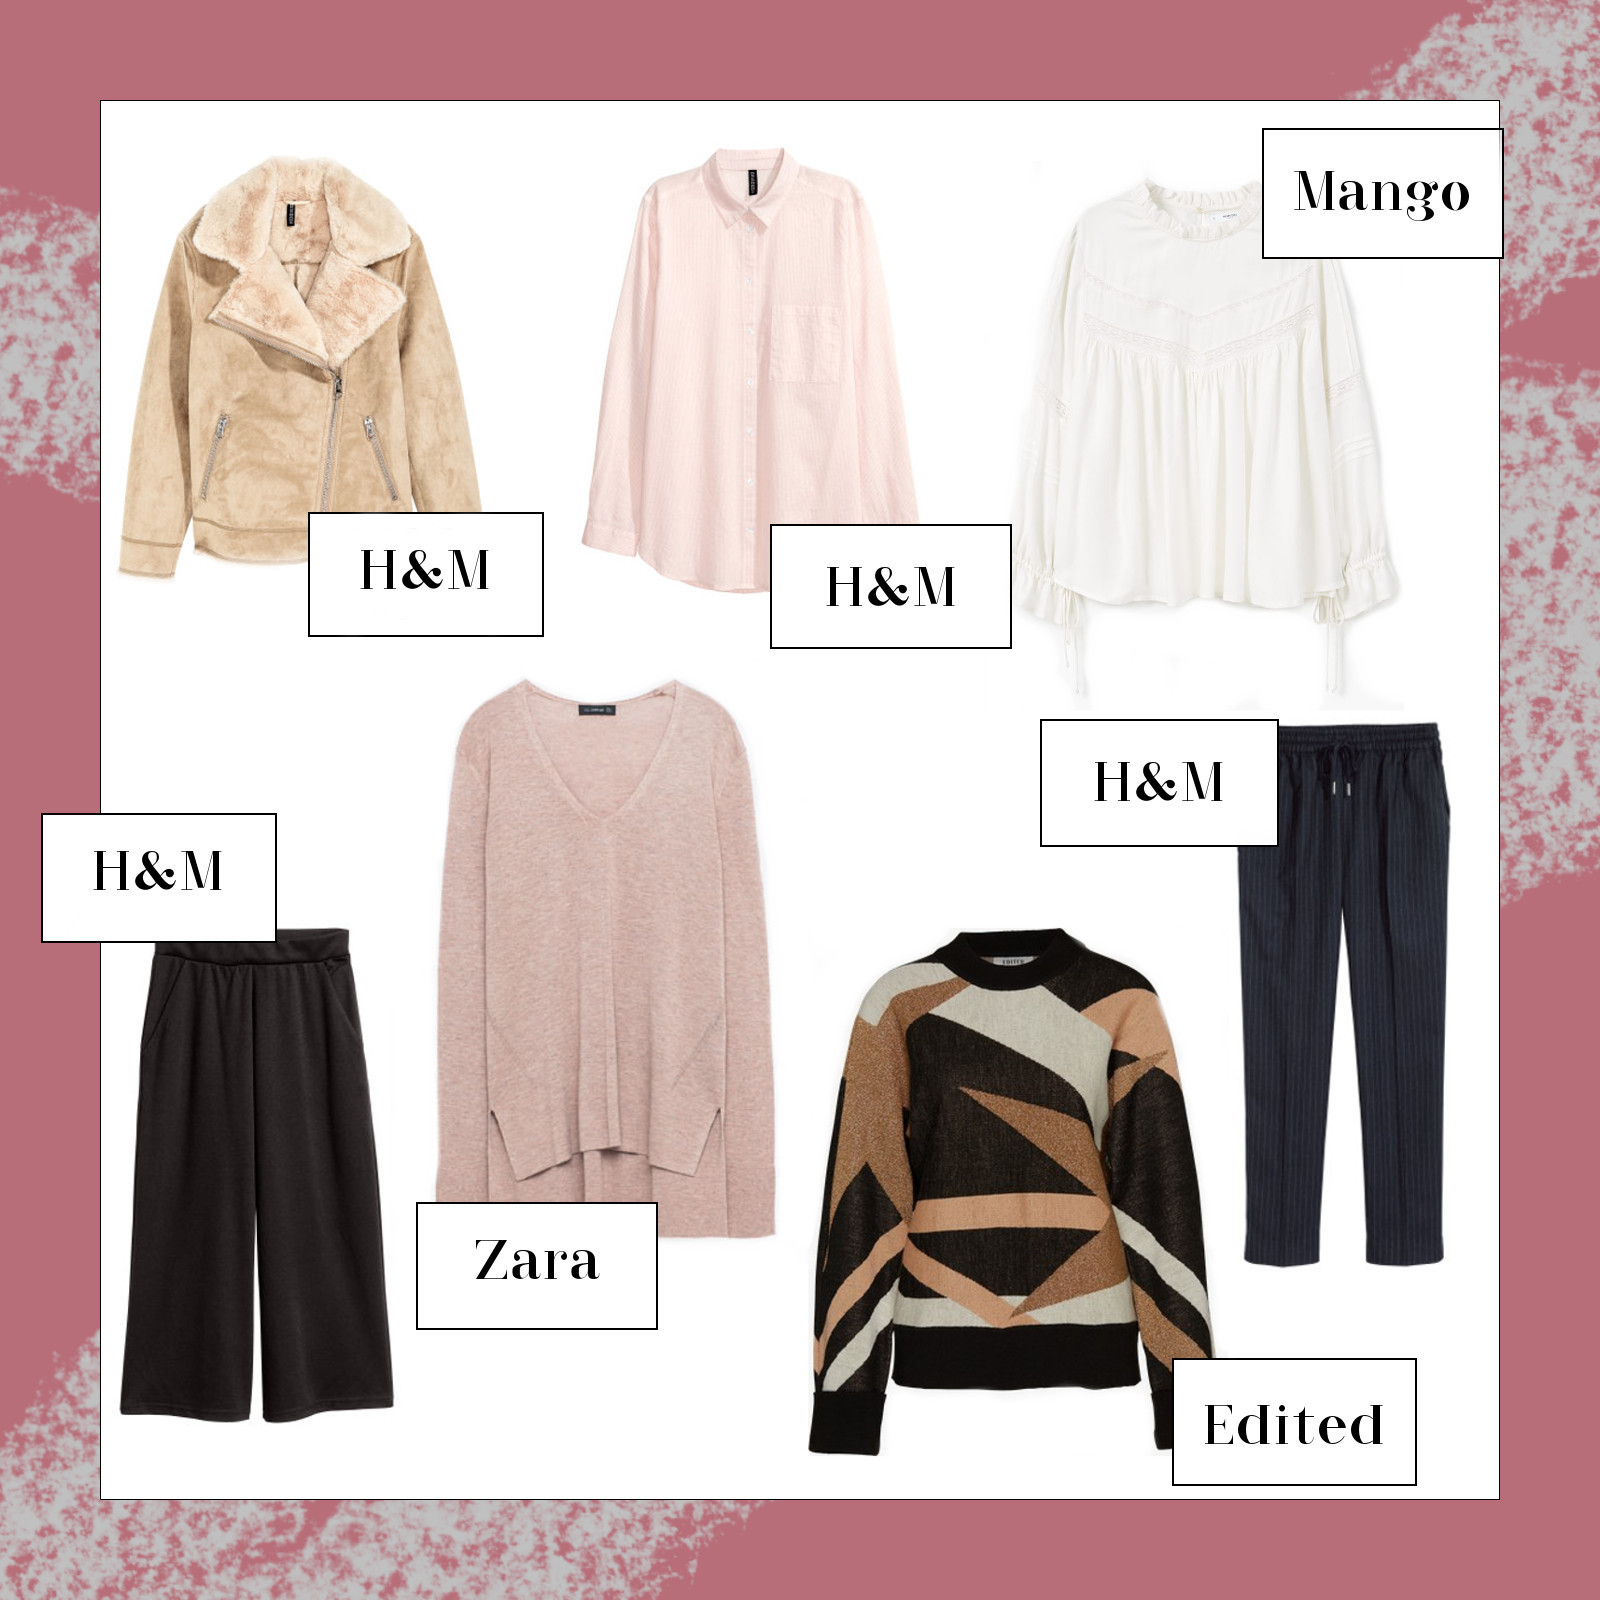 Mode Neuheiten, September Favoriten 2016, Monatsrückblick, H&M, Edited, Mango, Zara, bezauberndenana.de